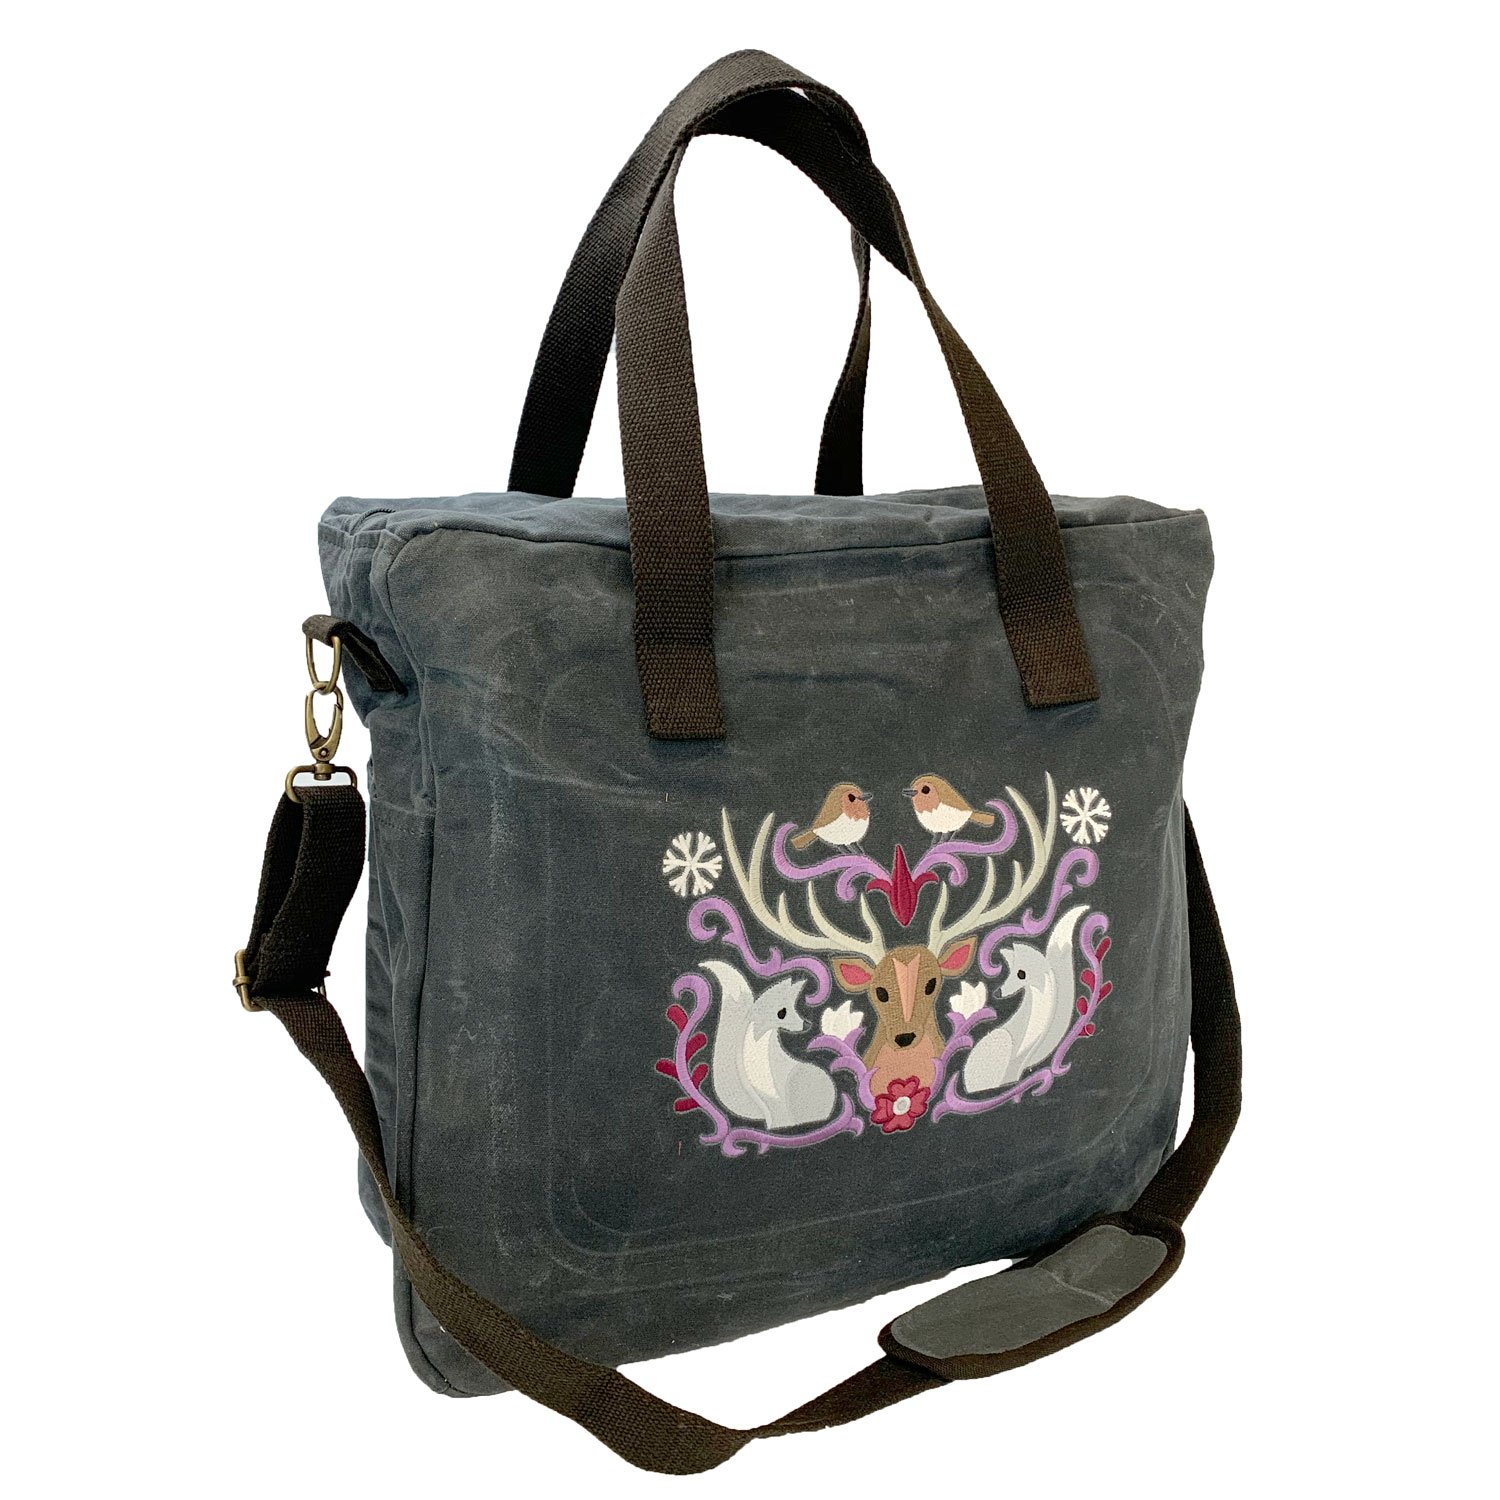 Embroidered Waxed Canvas Travel Tote Folk Wildlife